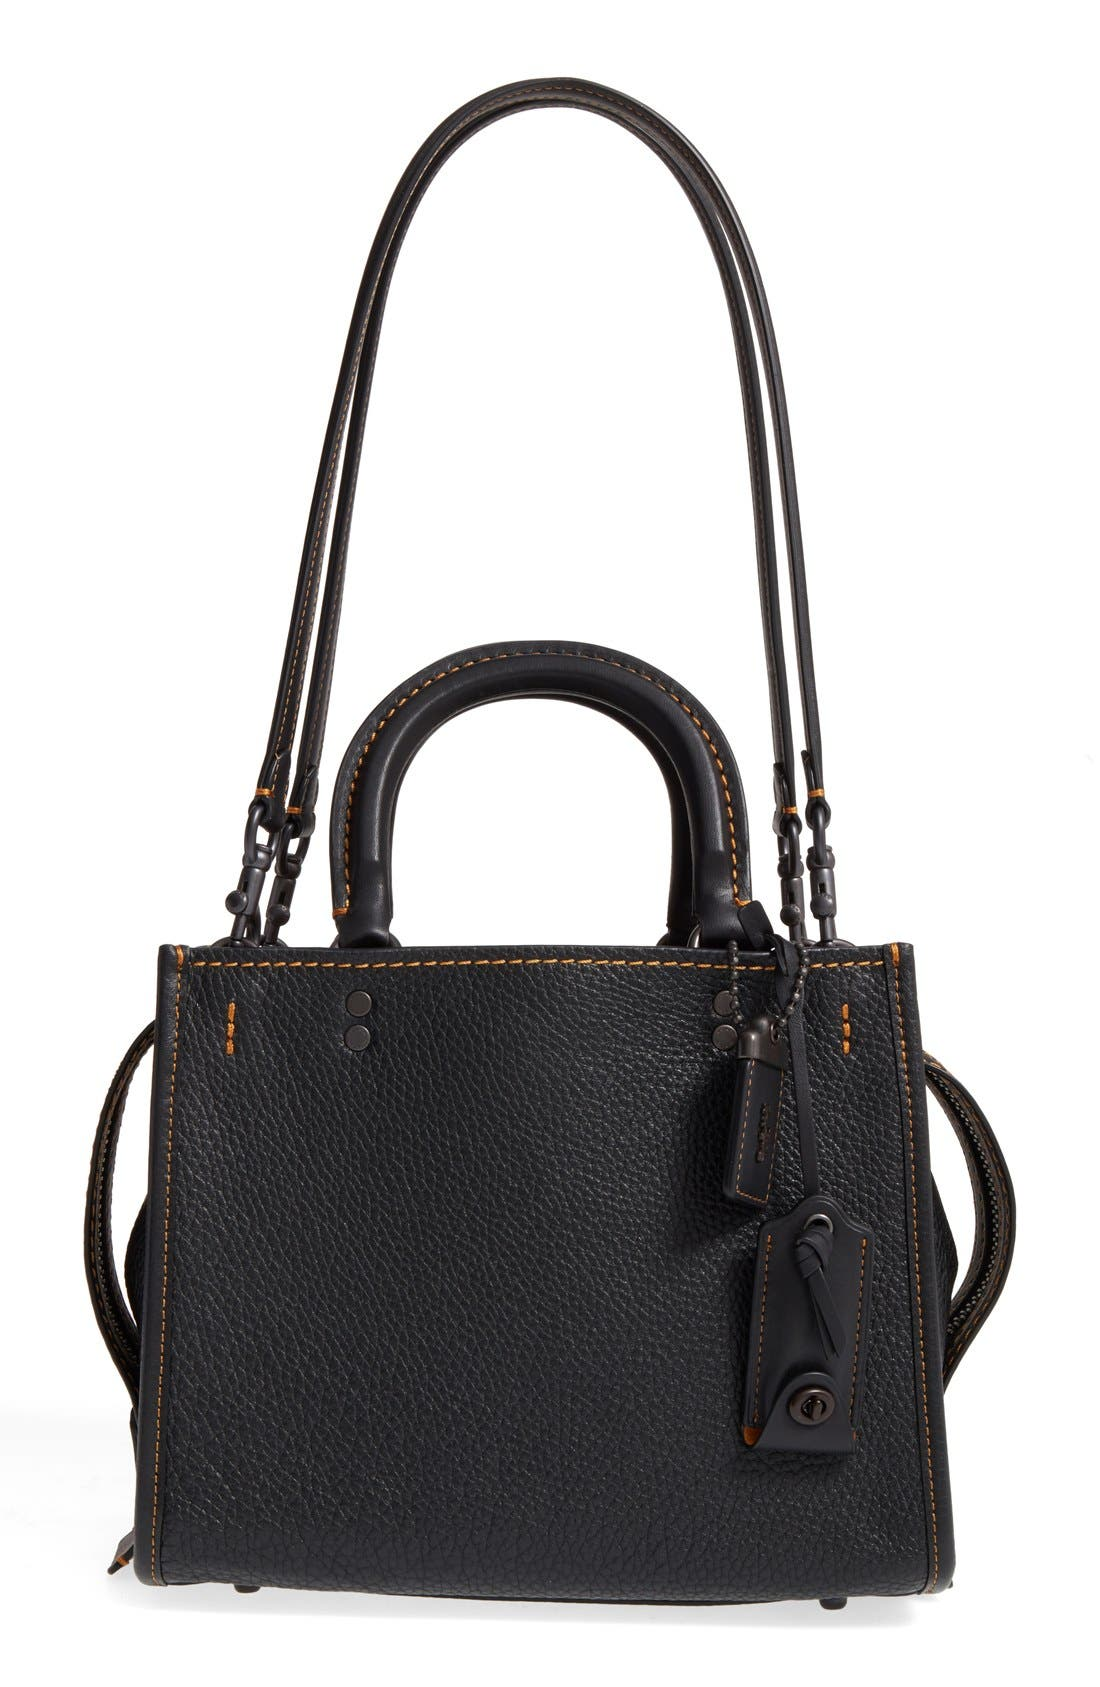 Alternate Image 1 Selected - COACH 1941 'Rogue 25' Leather Satchel